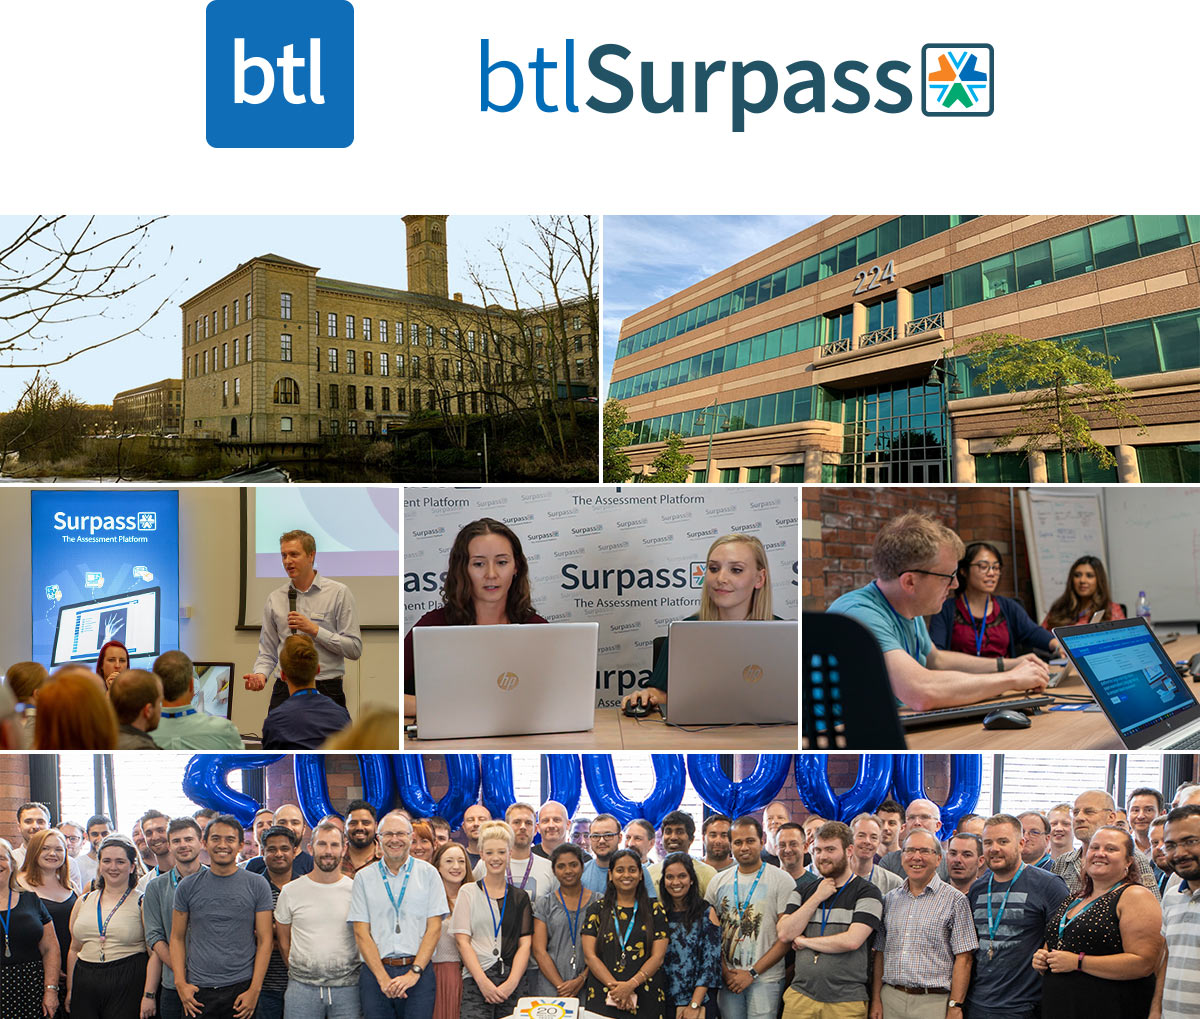 BTL staff photo montage